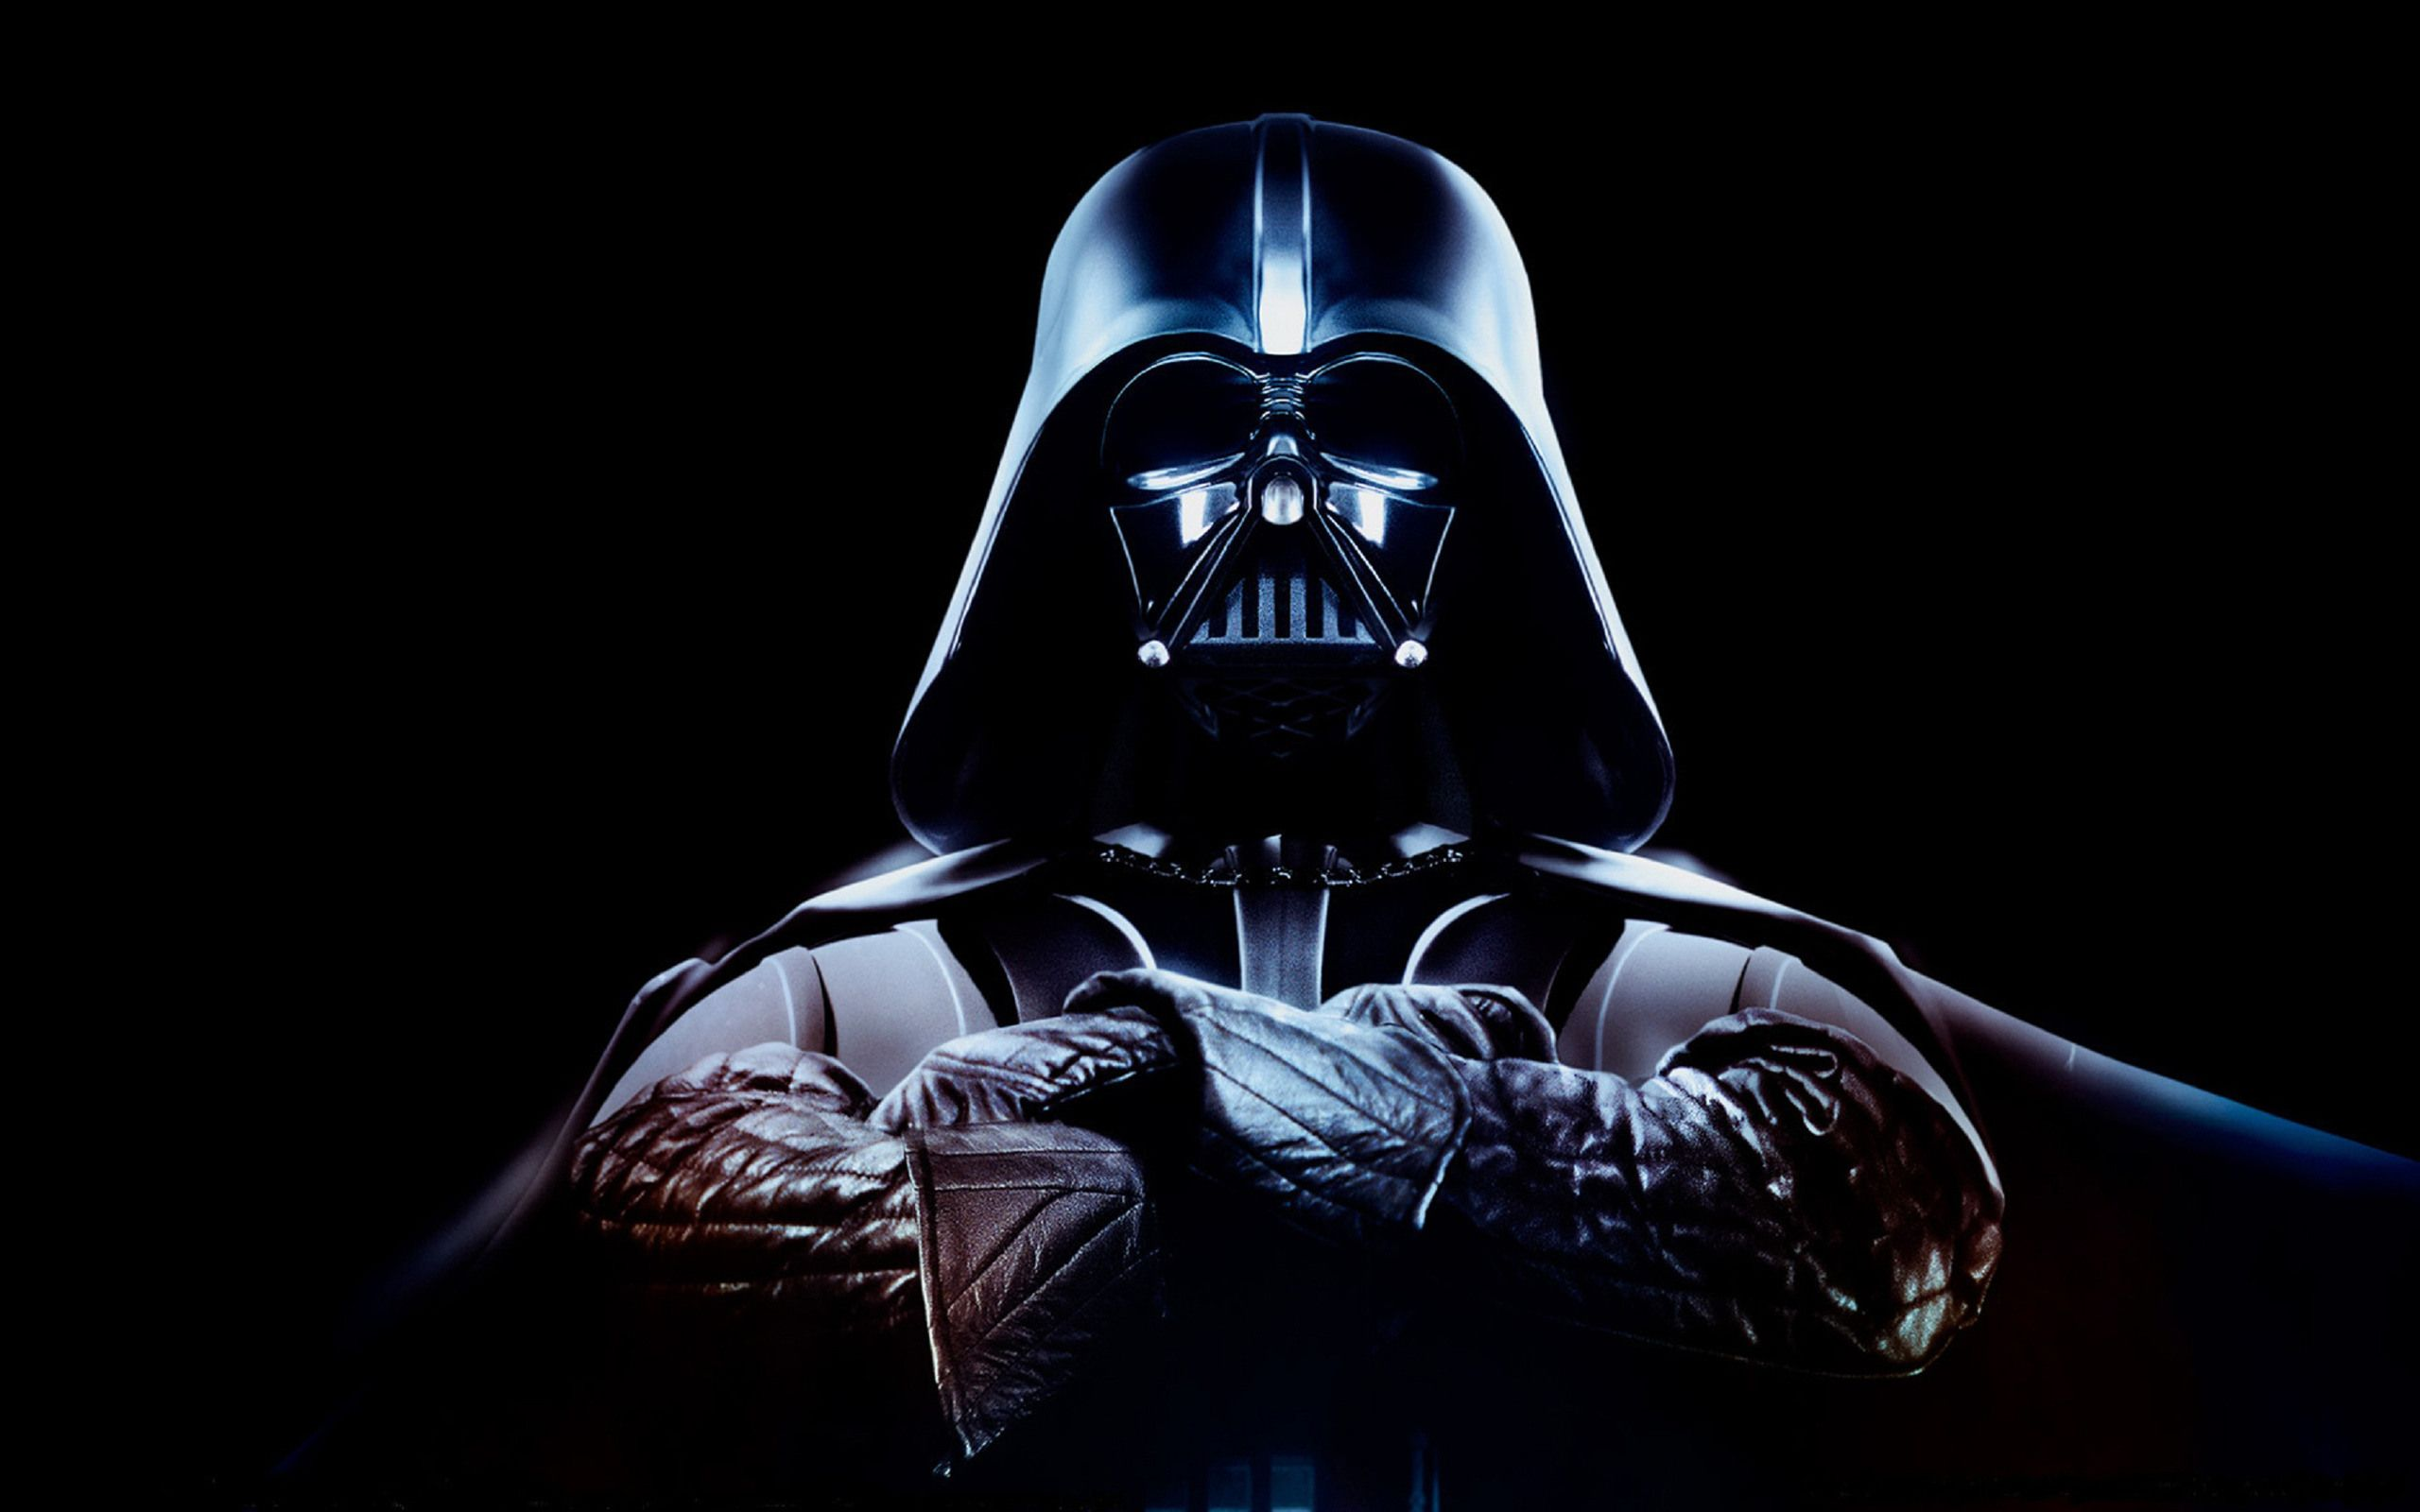 New Star Wars Episode VII Rumors; How Real Could They Be?